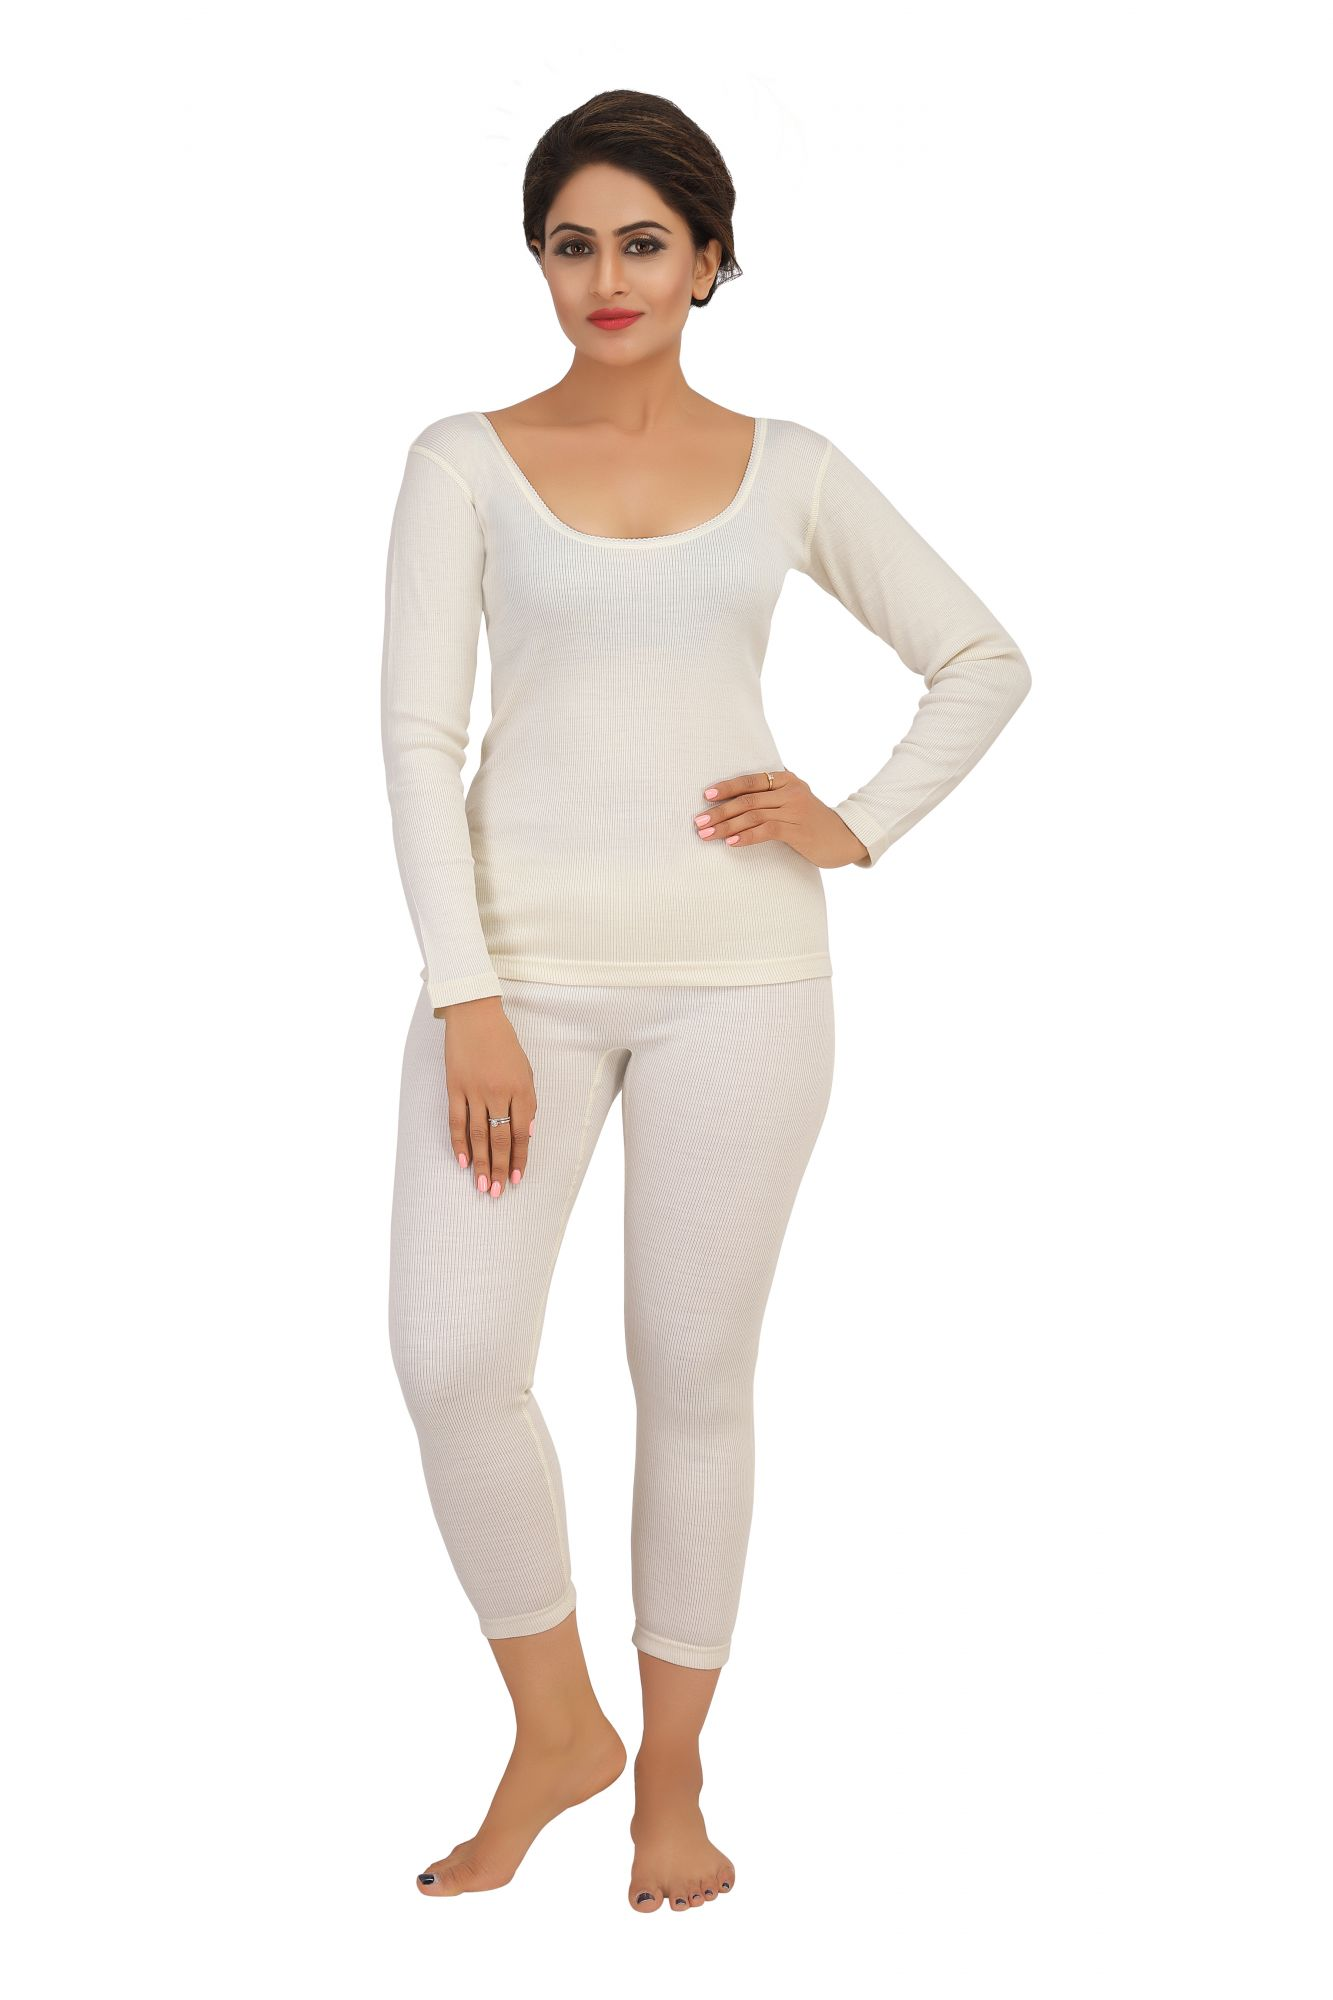 Purewool Full Sleeves Thermal Top- Cream